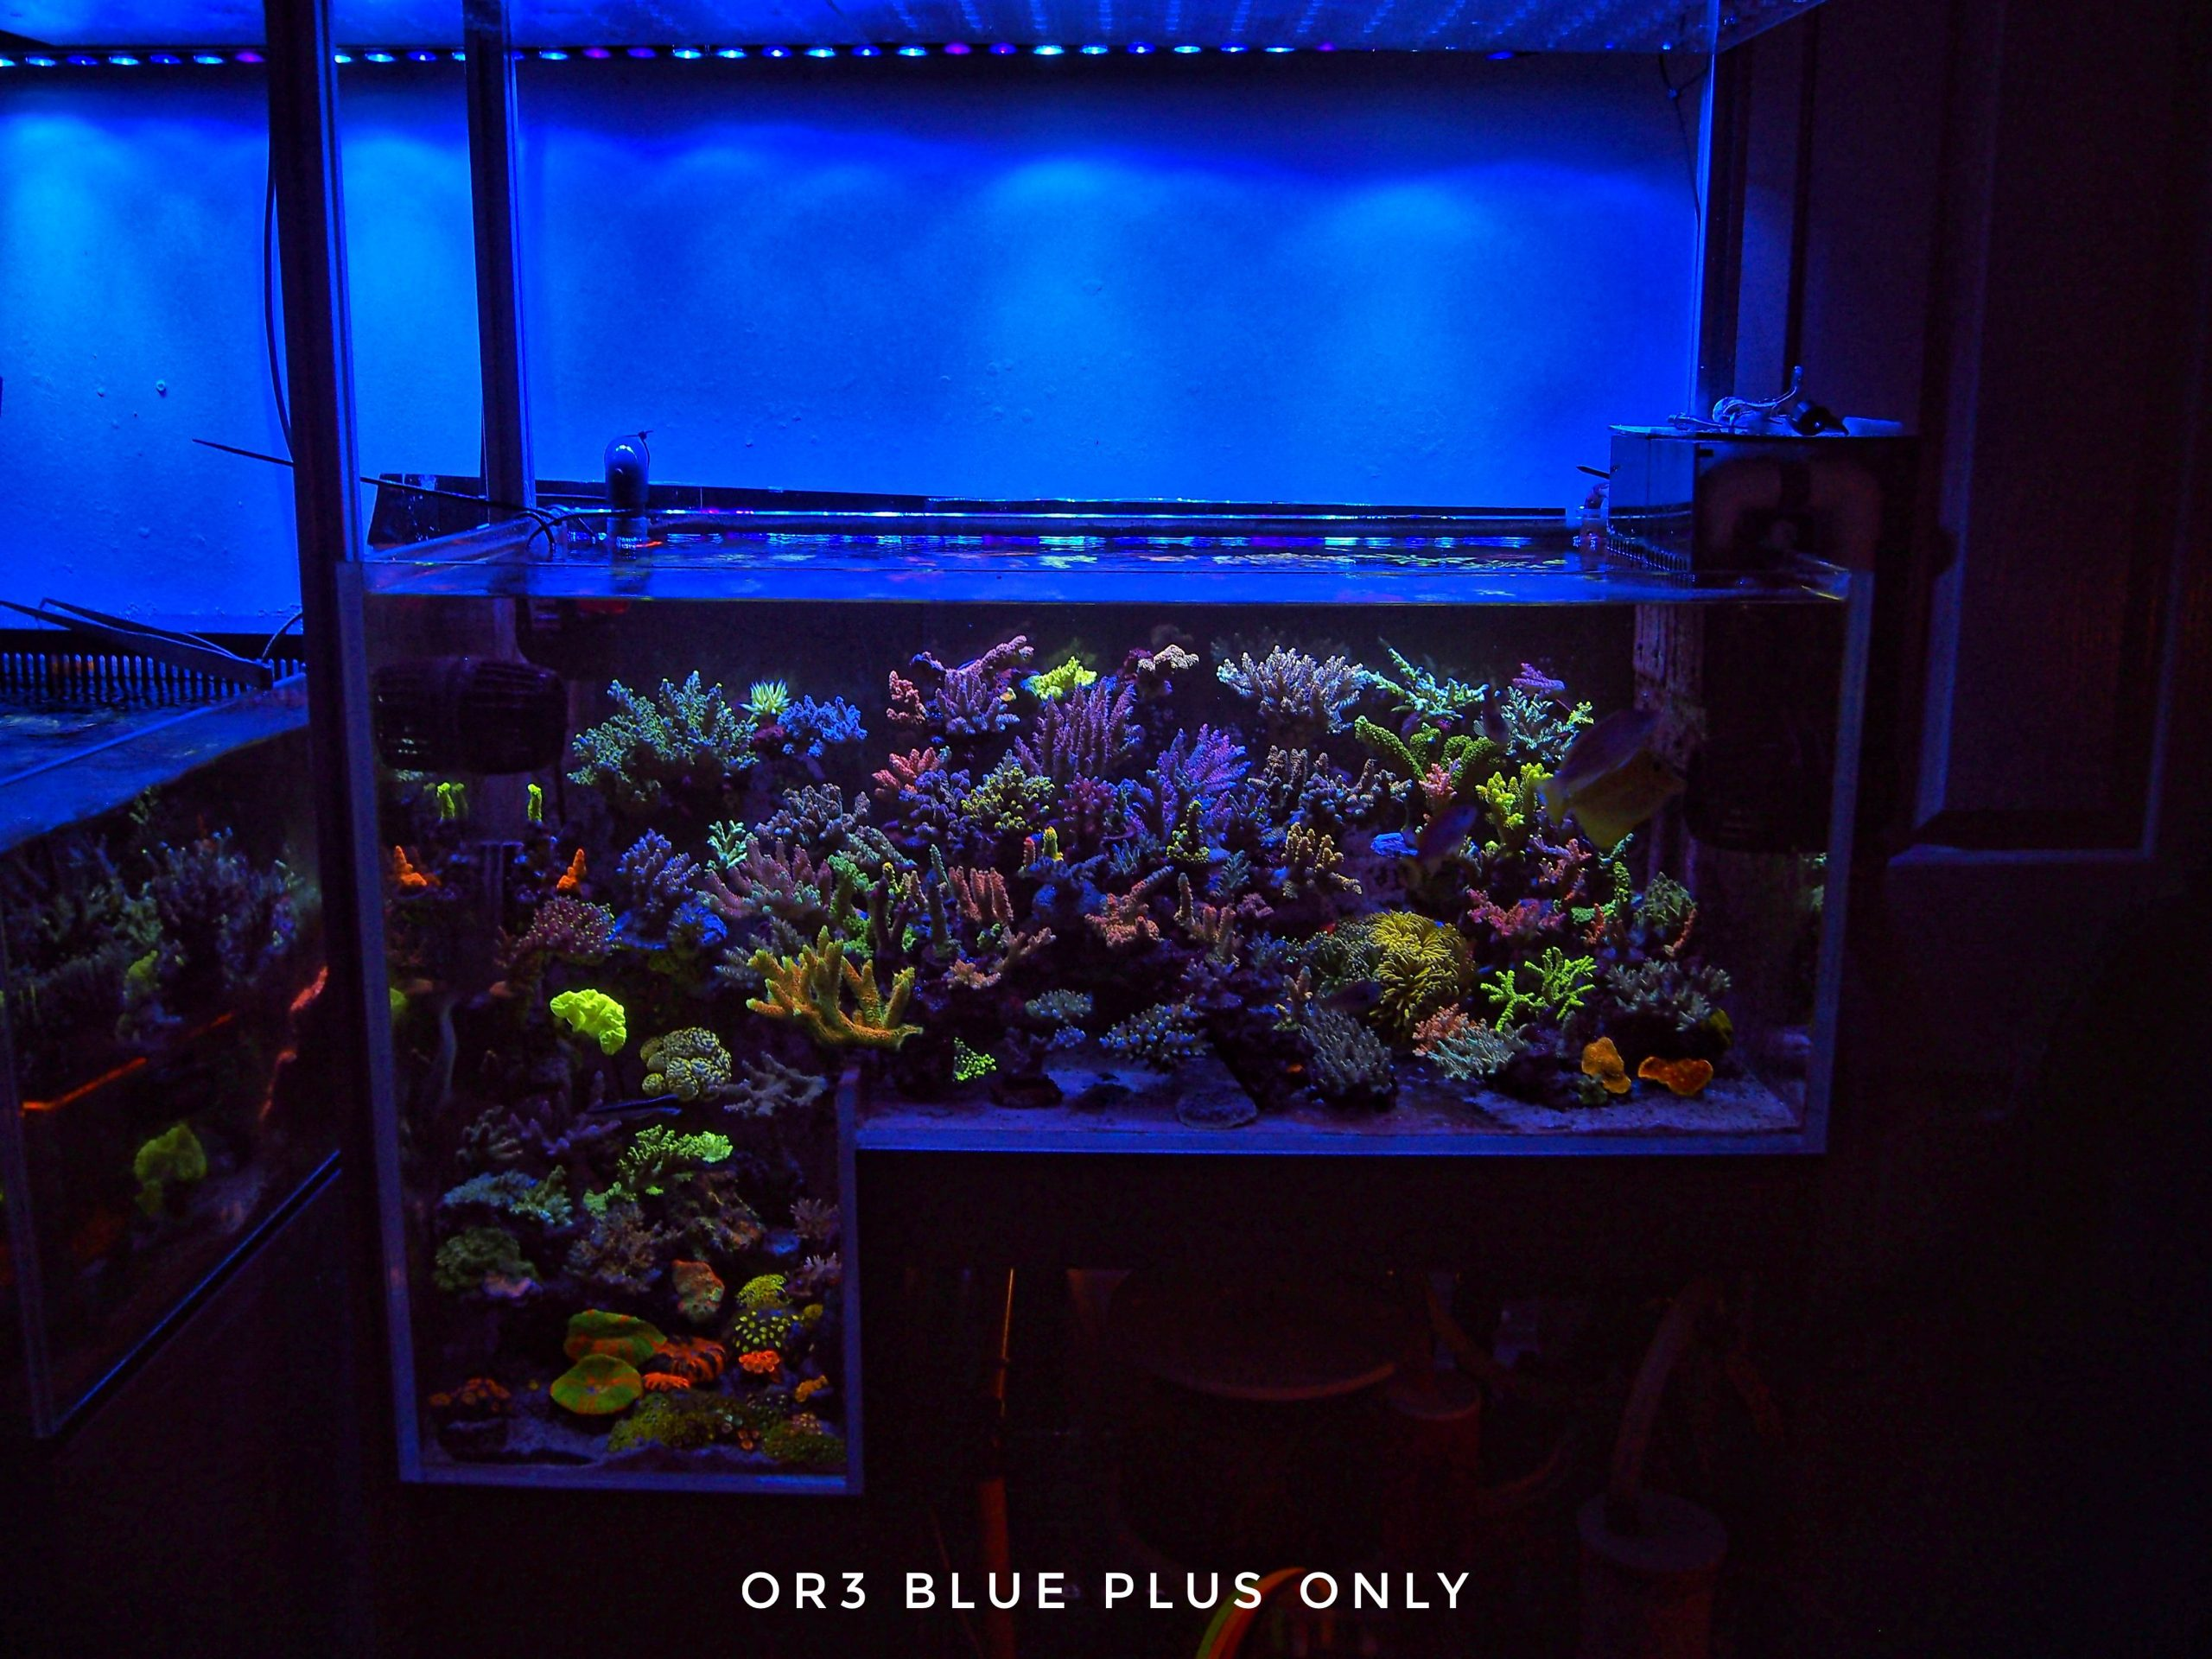 The wide blue spectrum of Orphek OR3 Blue Plus LED Bar